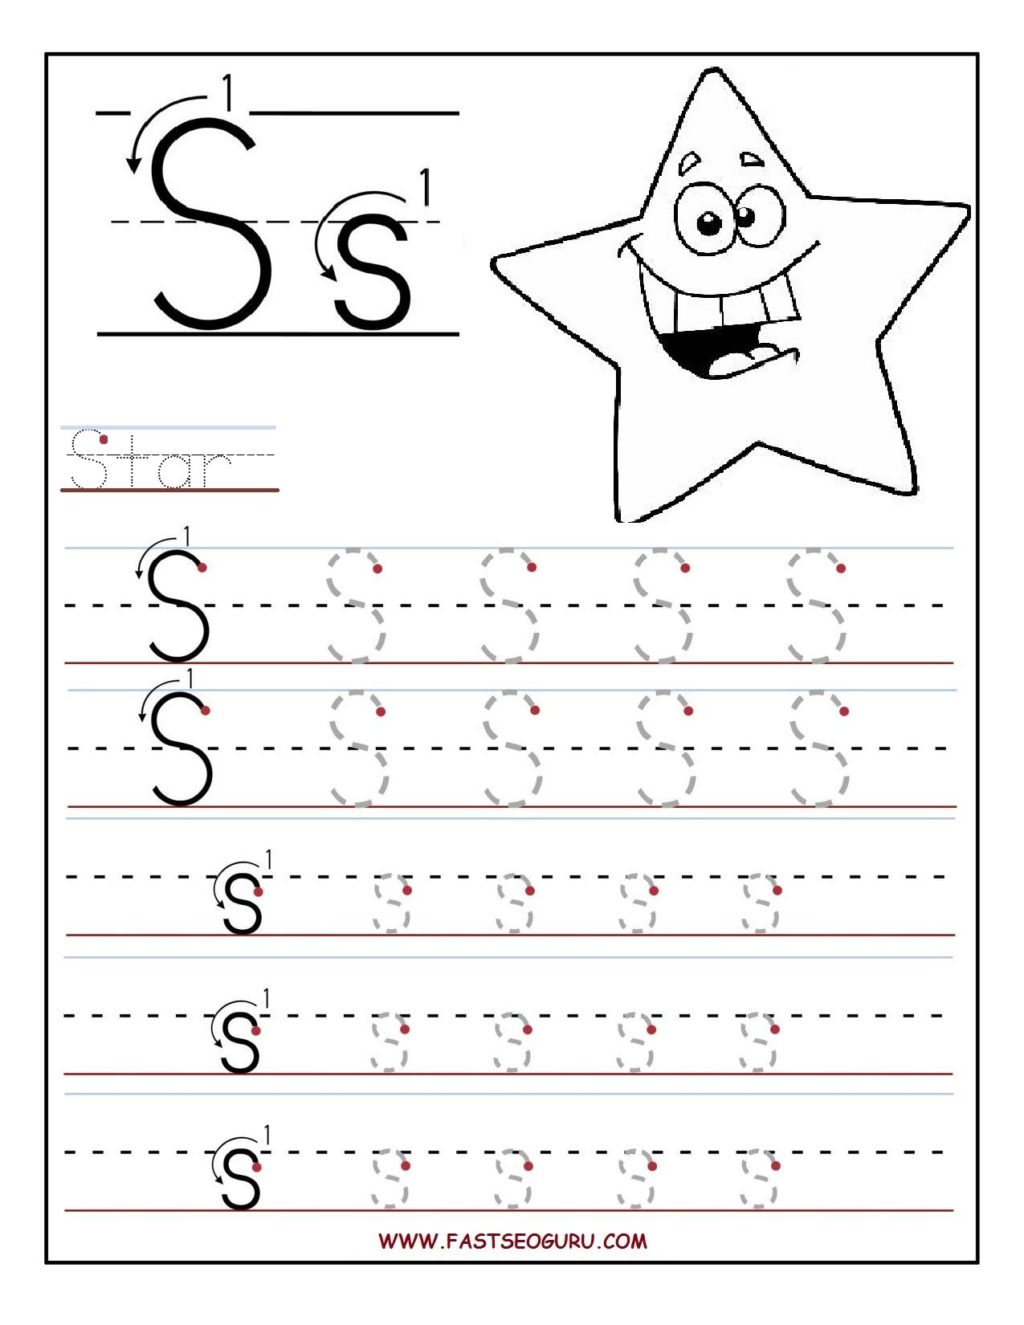 Worksheet ~ Printable Cursive Alphabet Worksheets